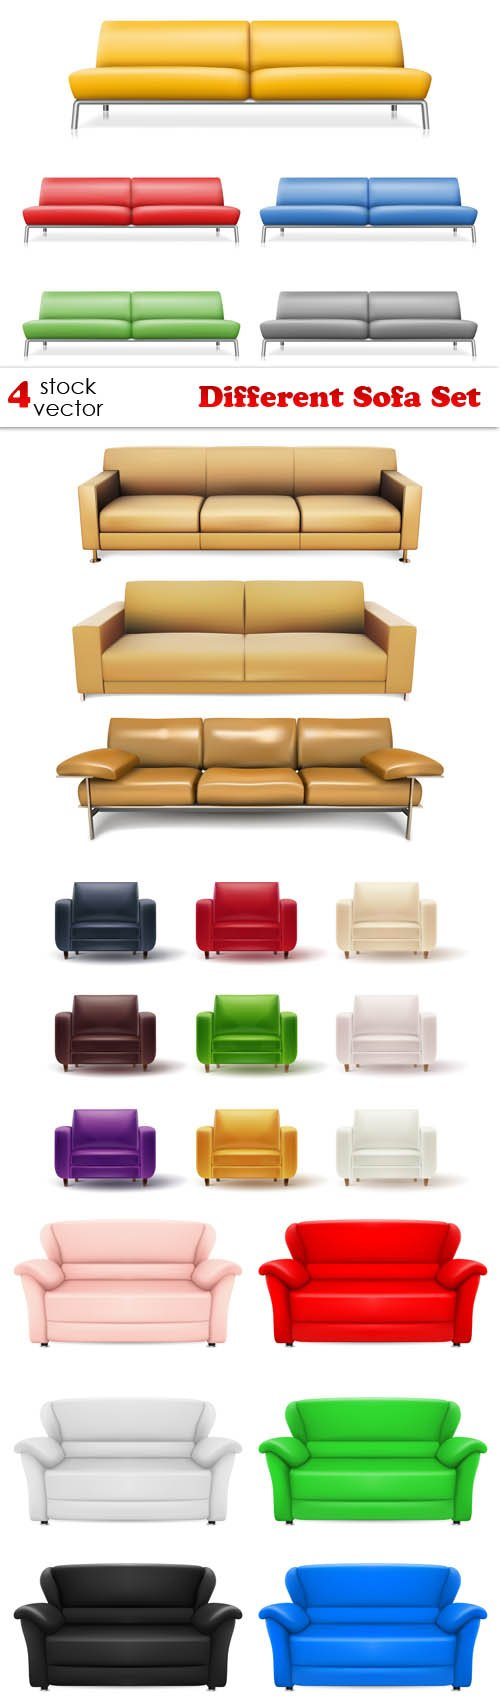 Vectors - Different Sofa Set